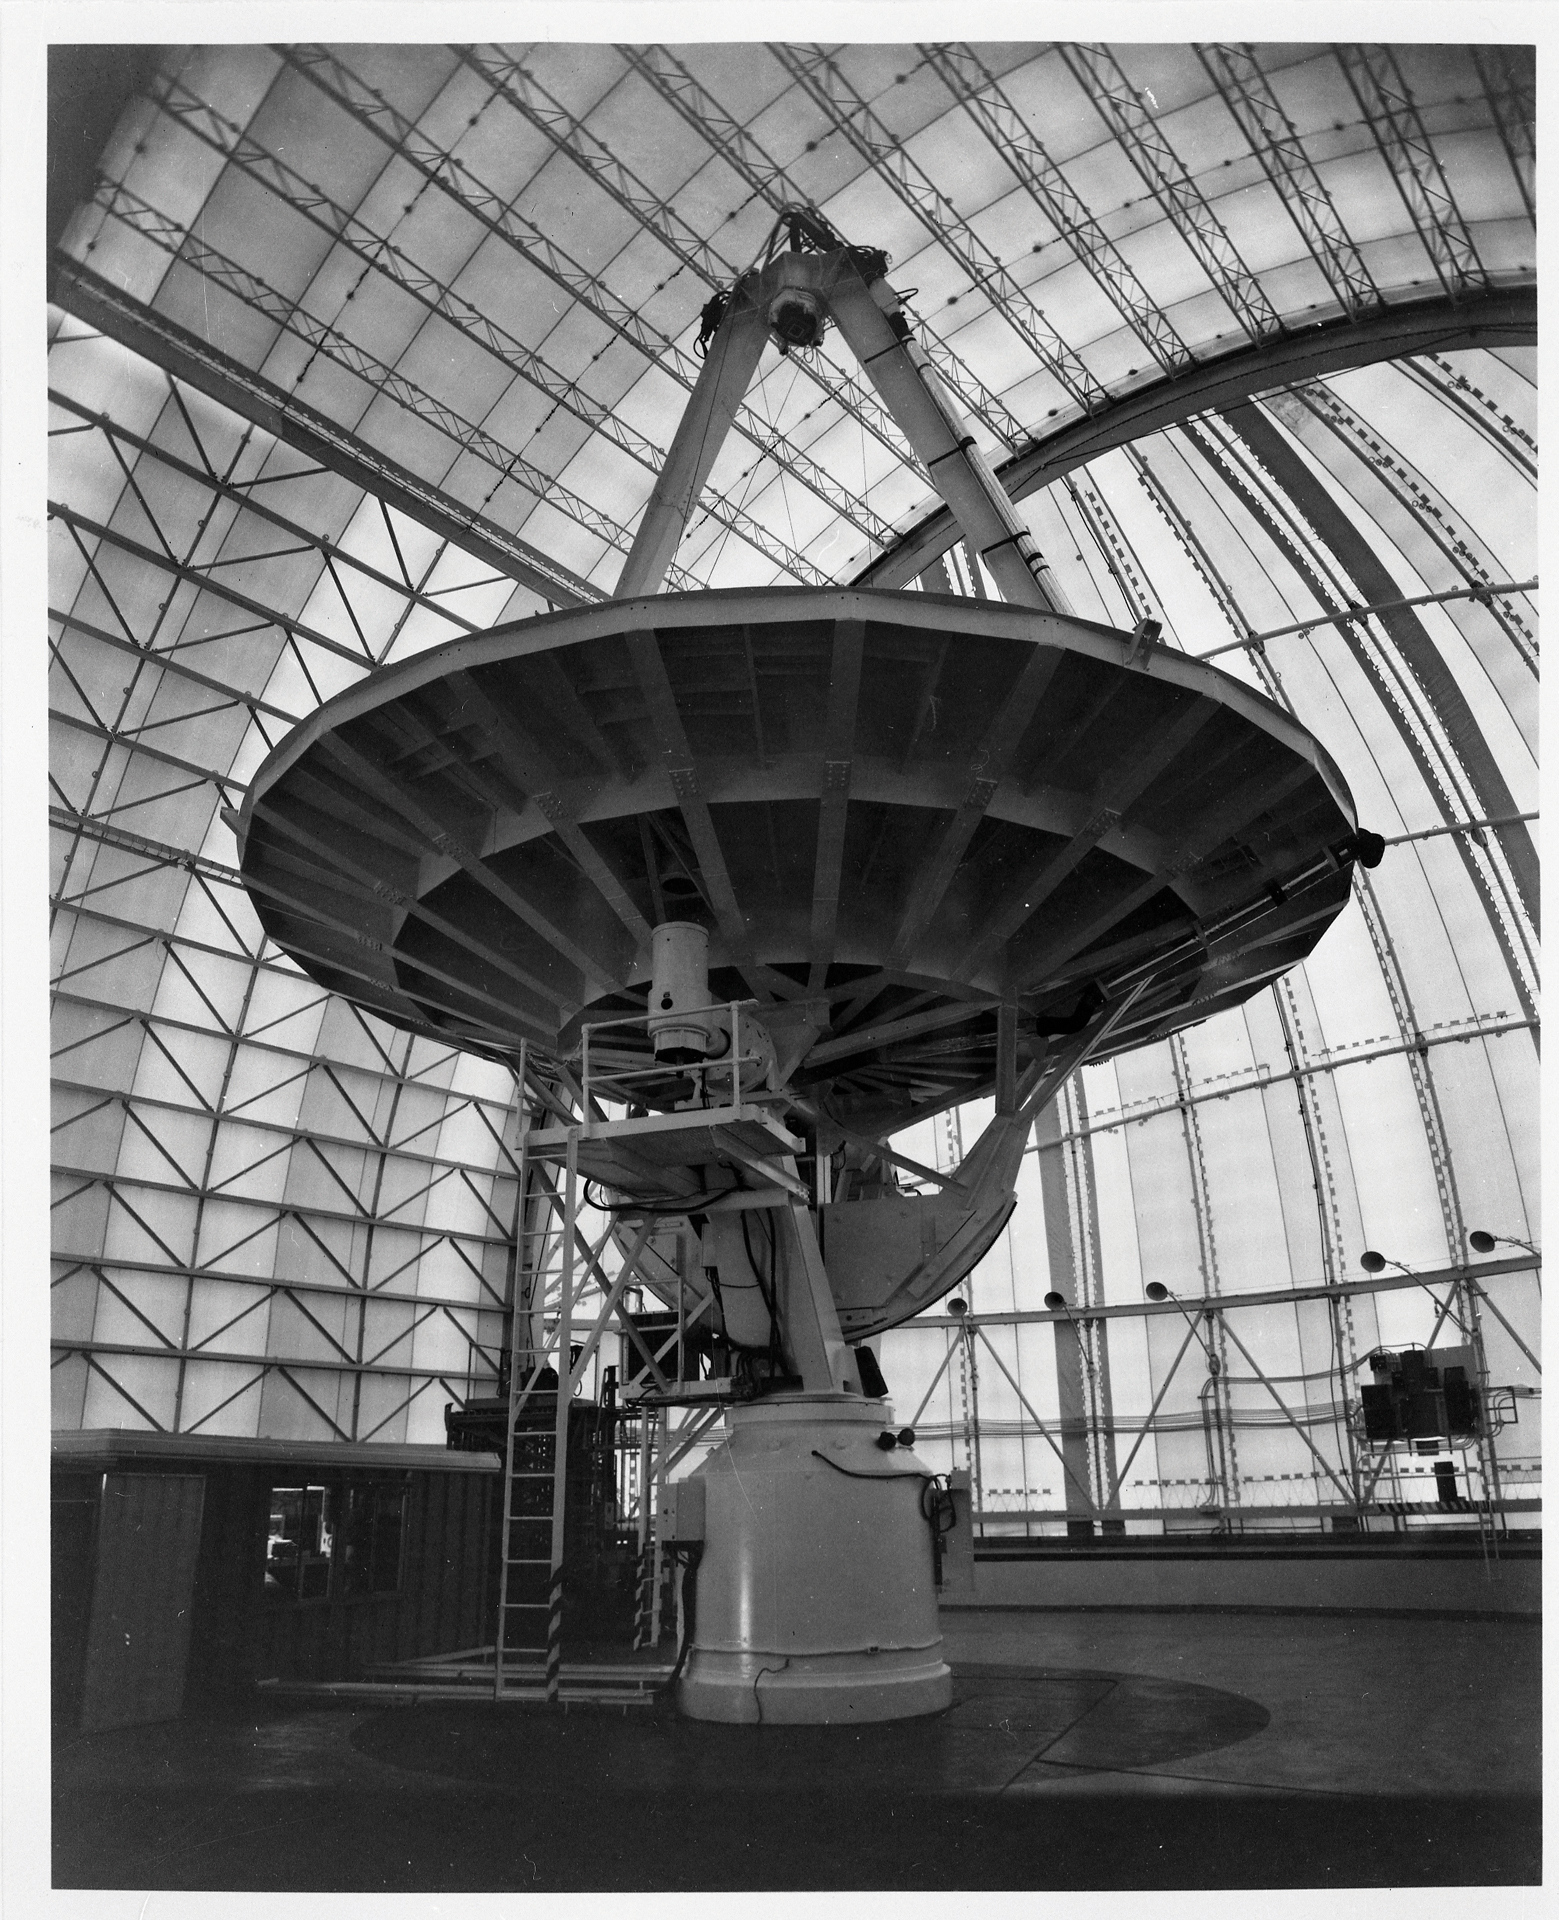 The 36-foot (12m) telescope under cover